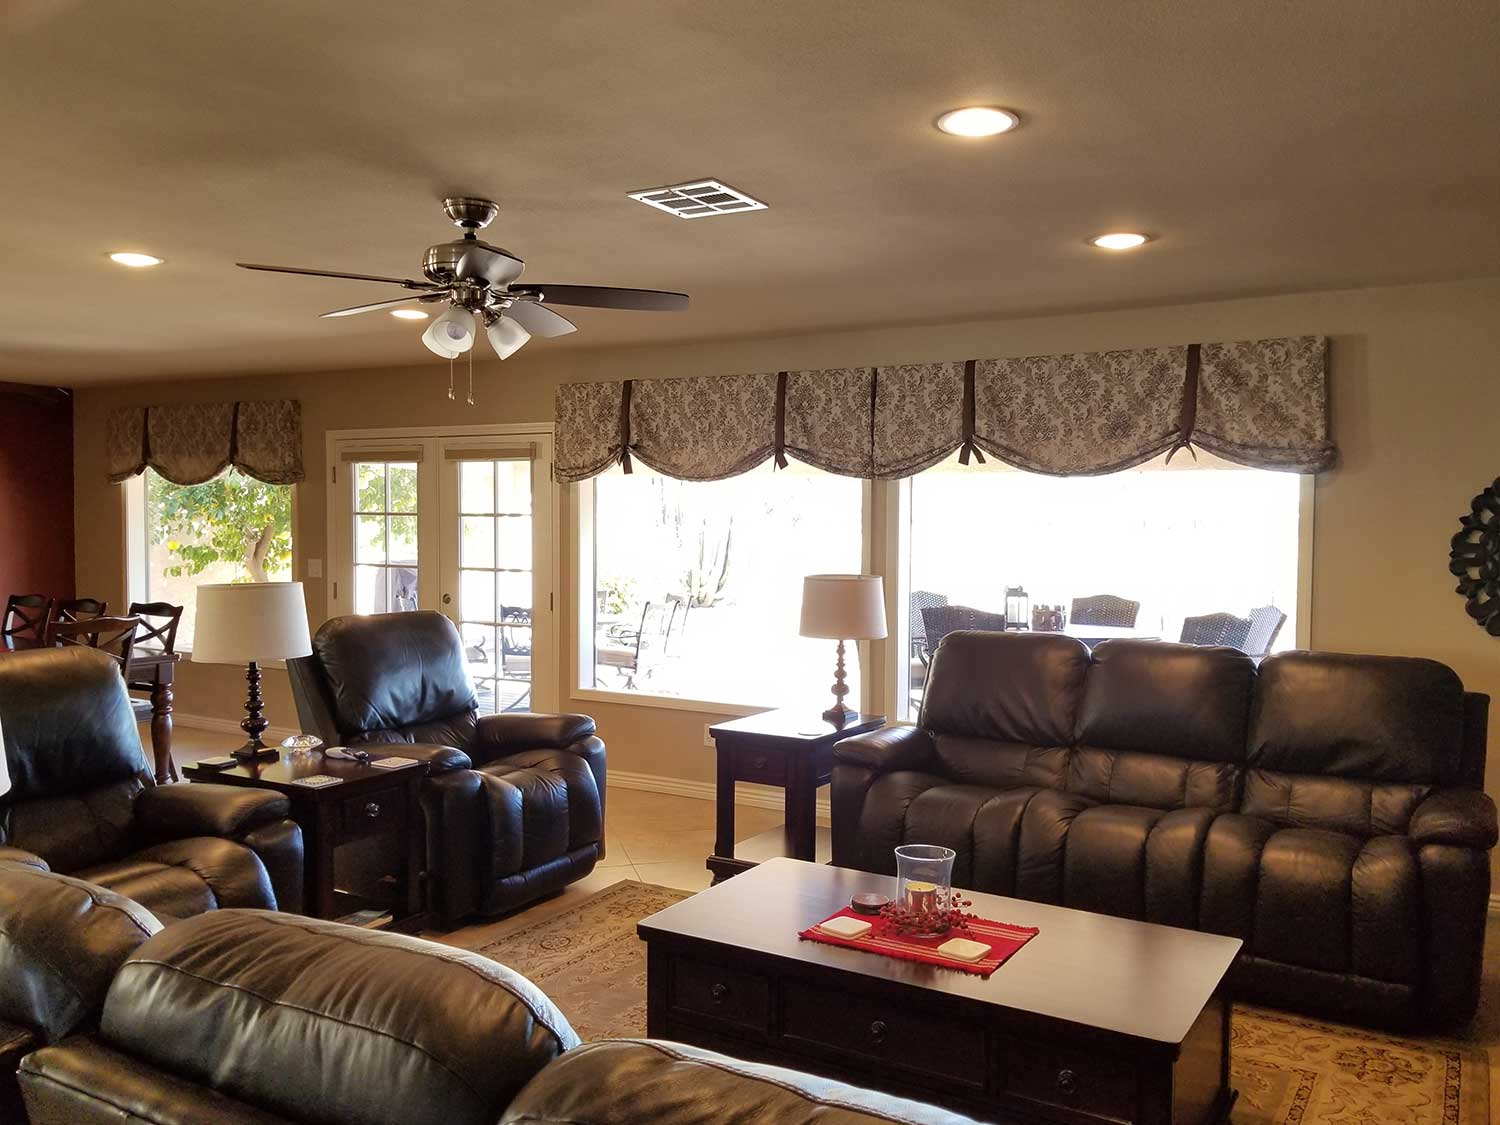 Board mounted Valances over large windows in a living space